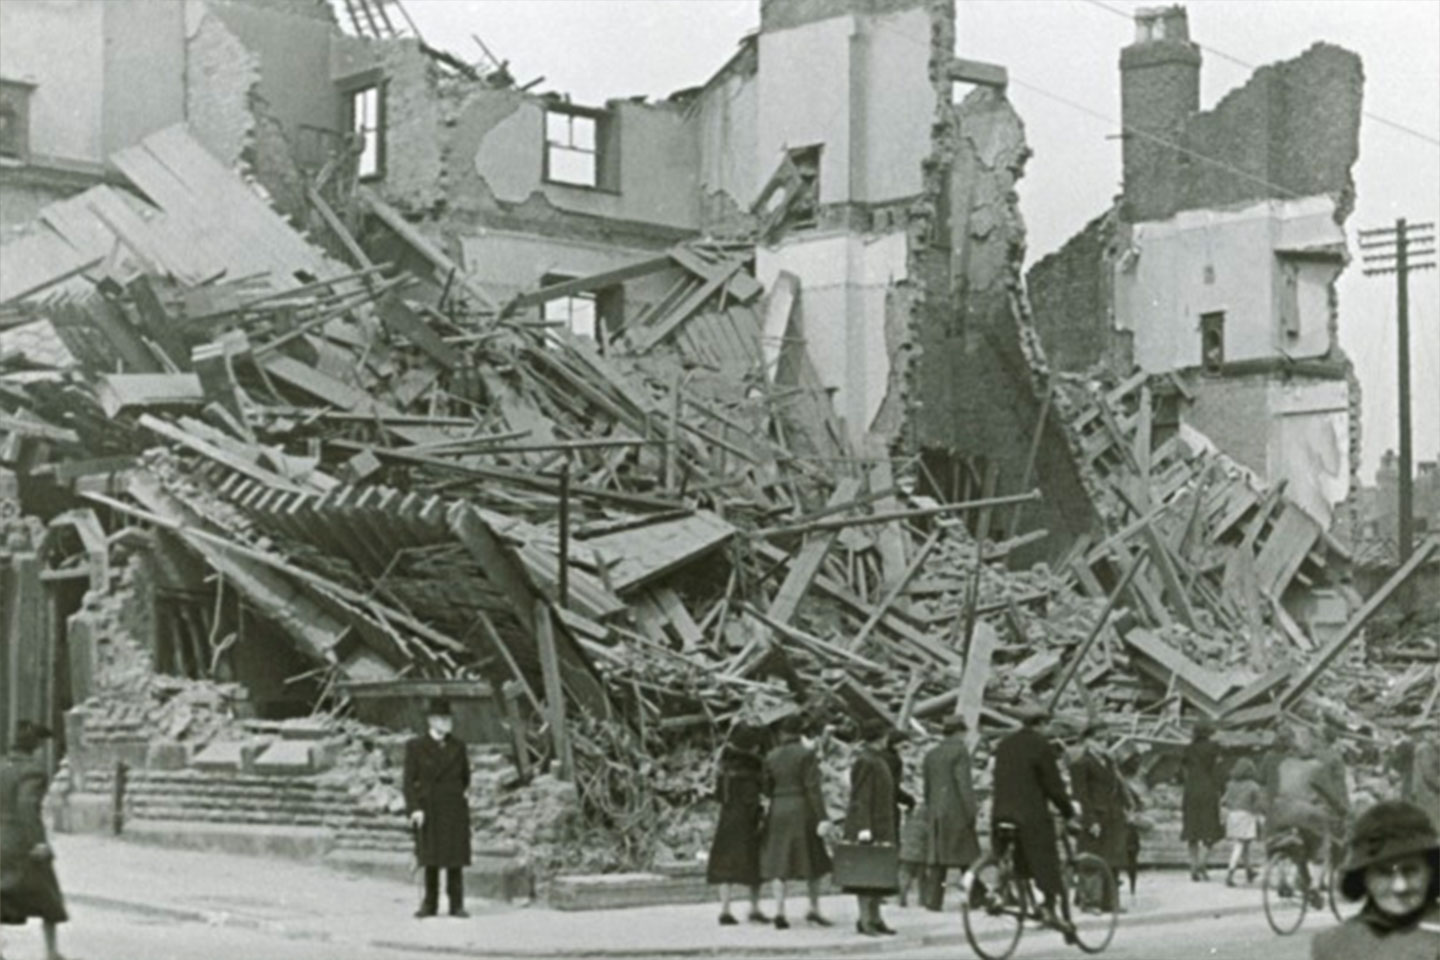 Liverpool Blitz photographs